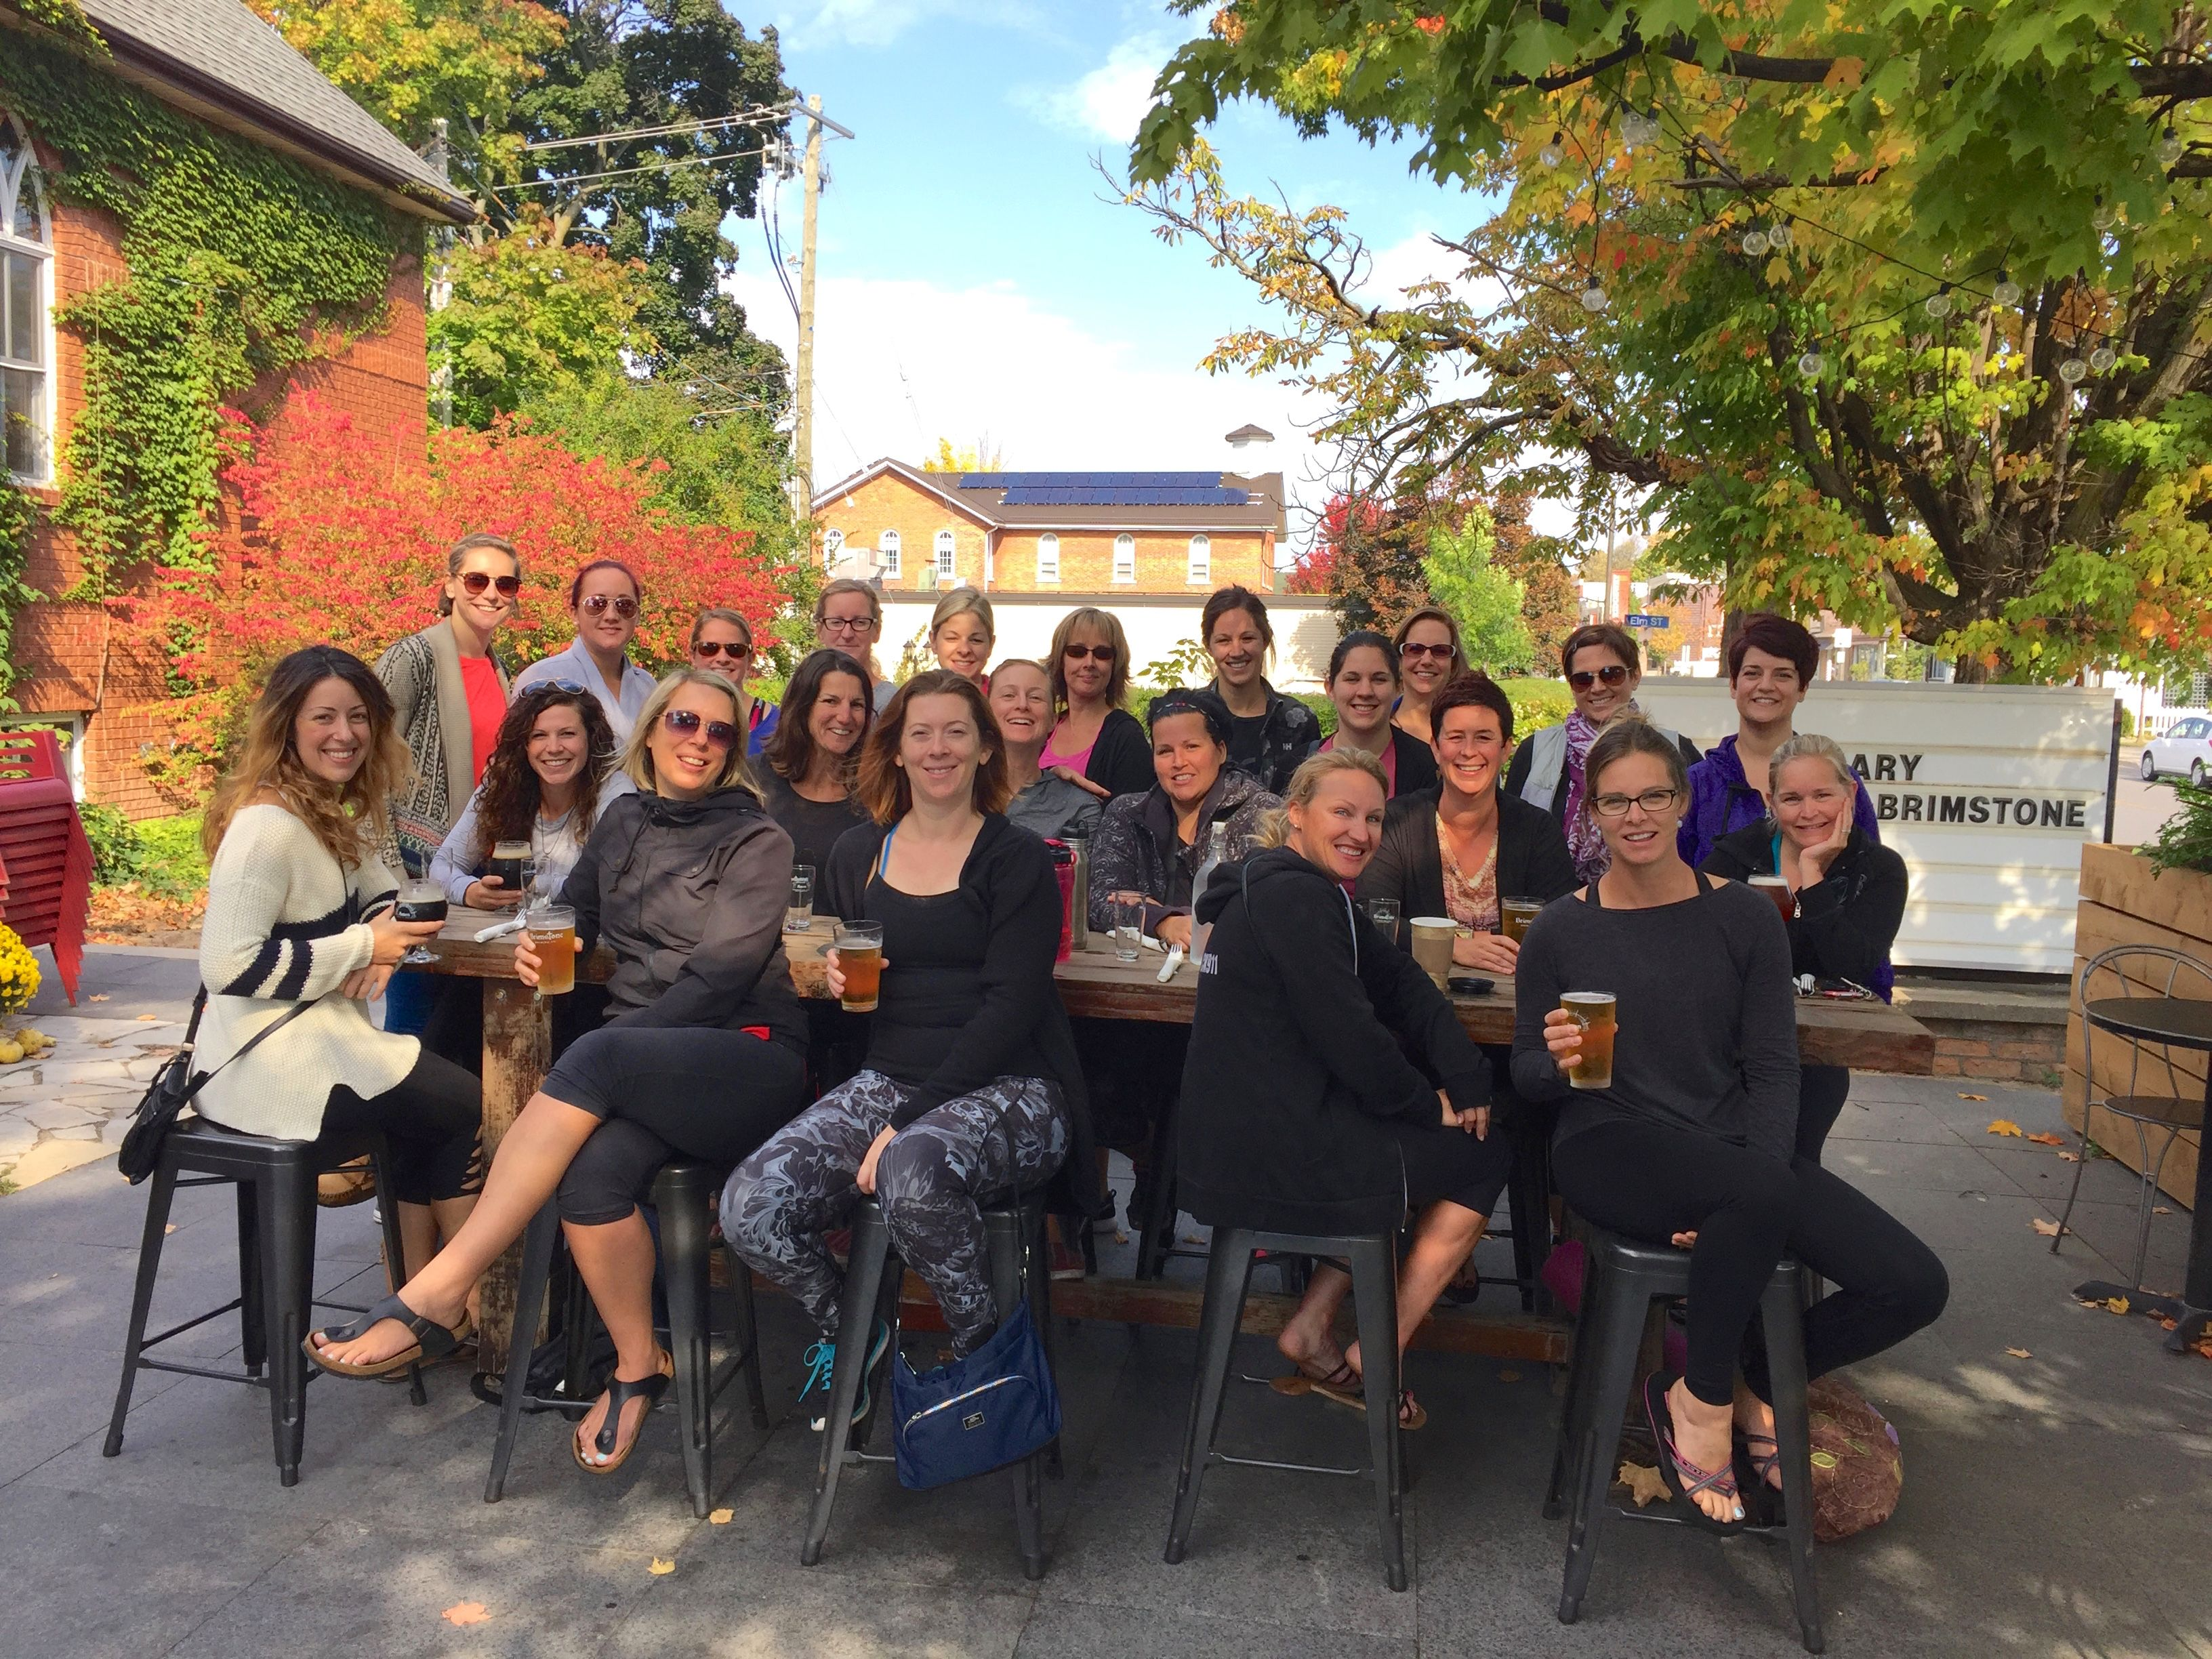 Bend Brunch & Brew event at Brimstone Brewing Co - so nice to be outside in October. Such a fun day!